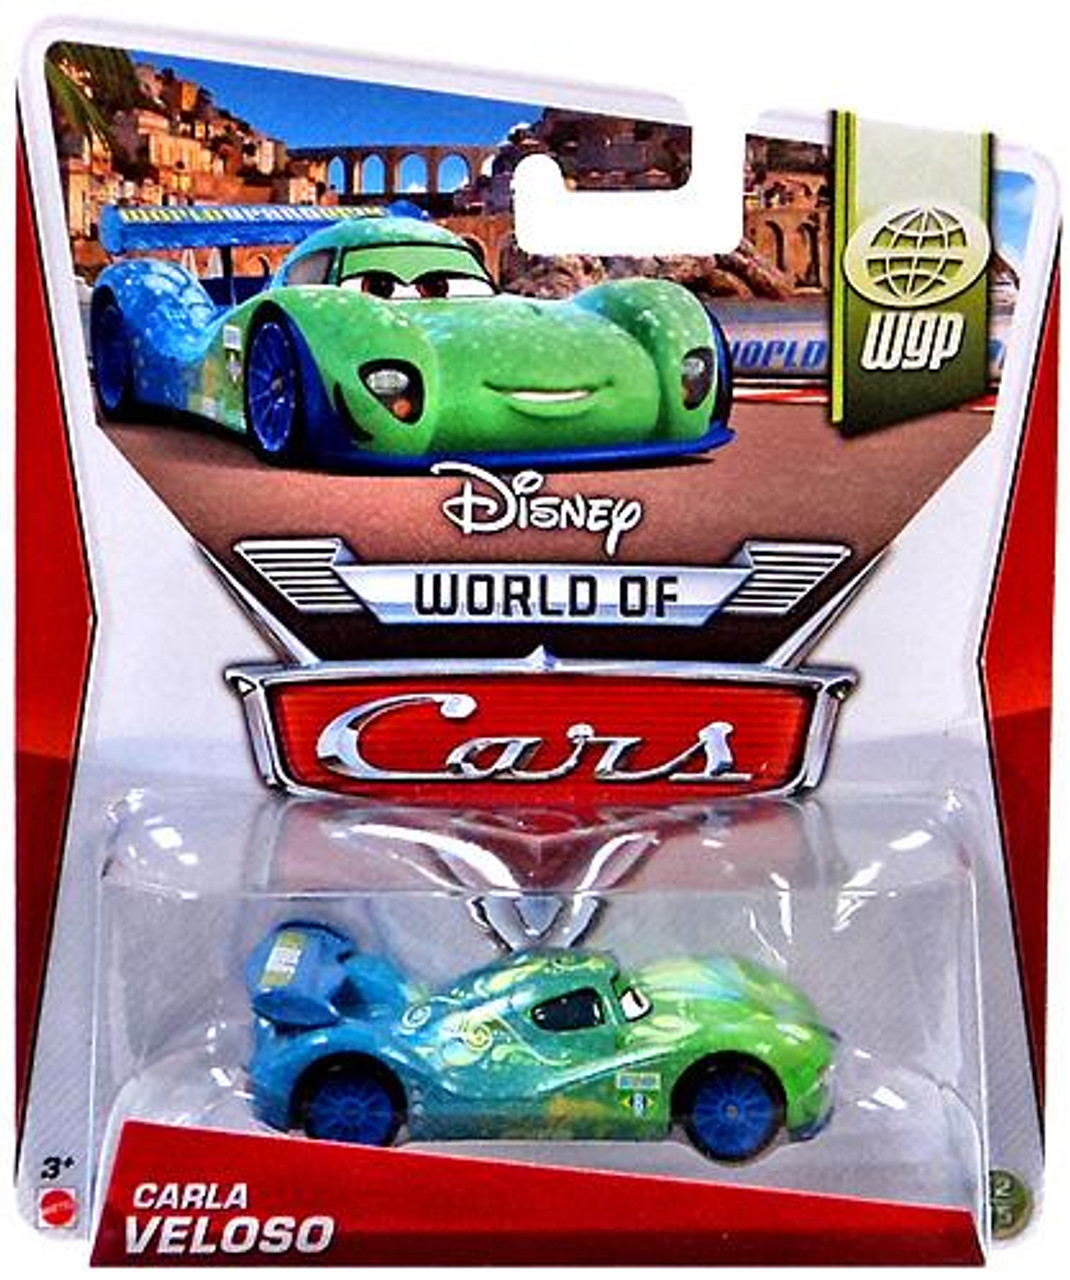 Disney Cars The World of Cars Series 2 Carla Veloso Diecast Car